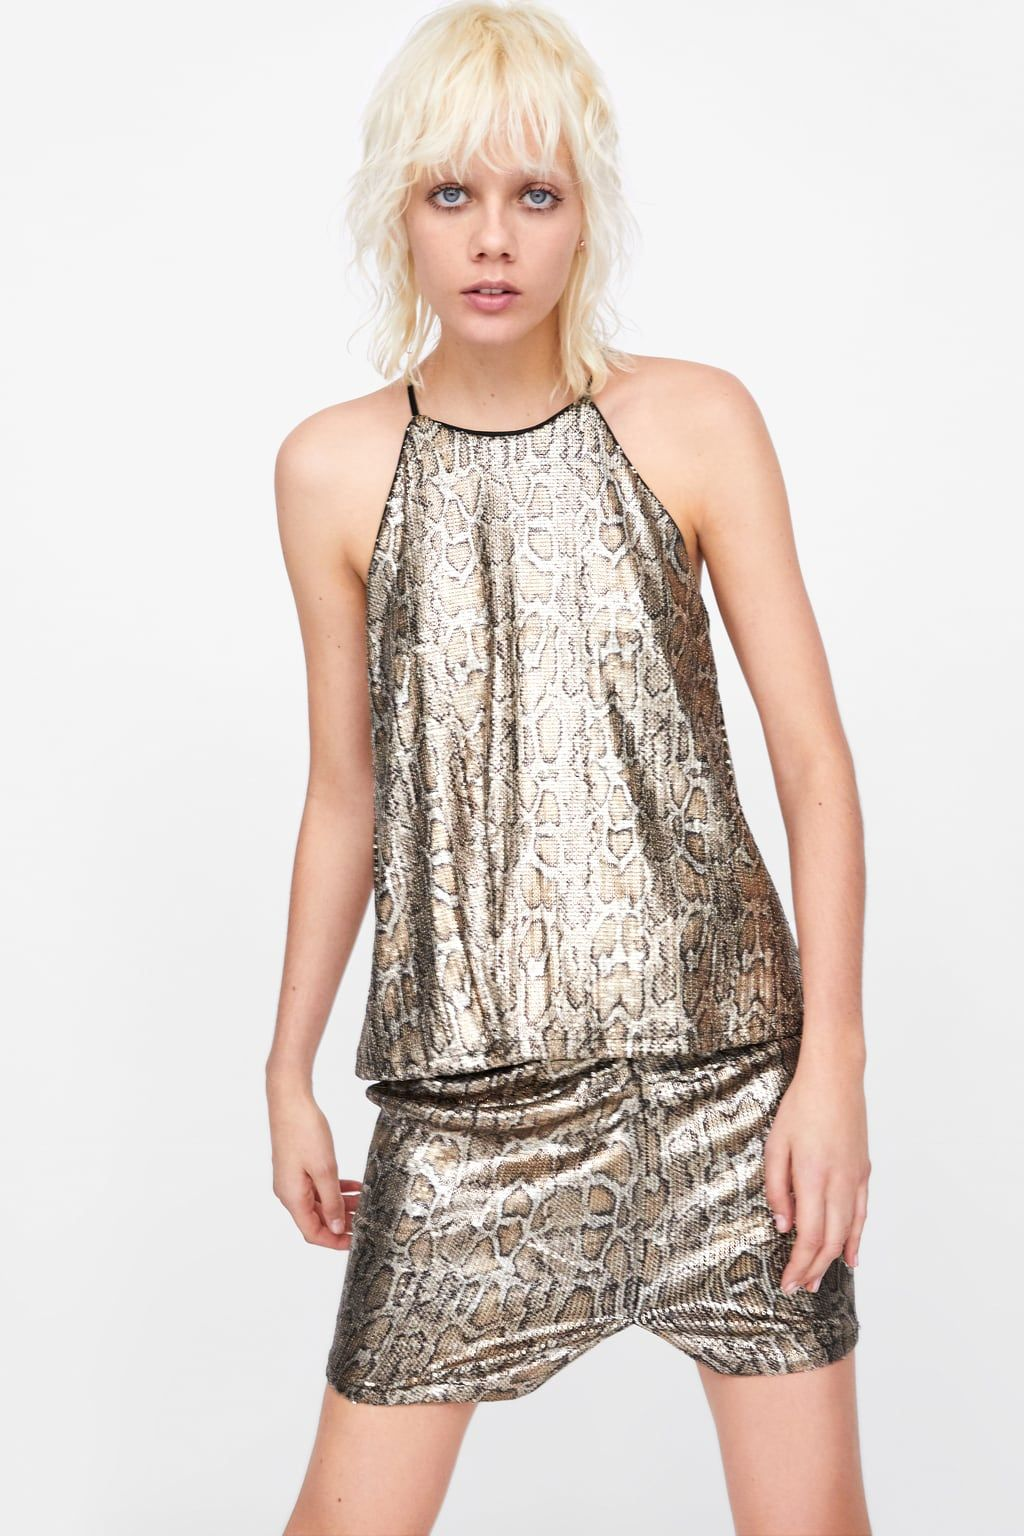 359f46878728d2 Image 2 of ANIMAL PRINT SEQUIN TOP from Zara